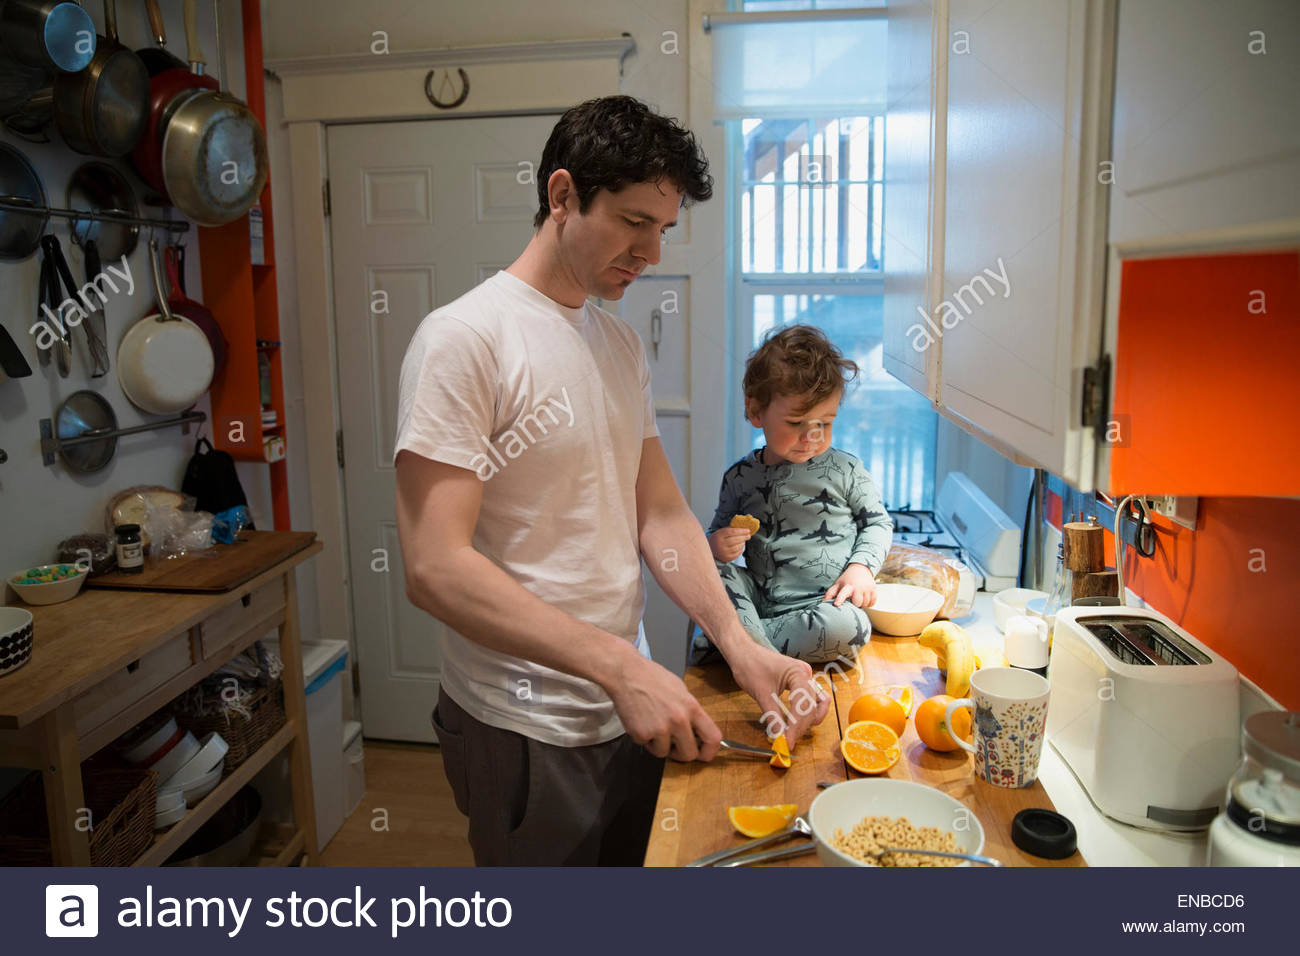 Father and son cutting oranges for breakfast kitchen - Stock Image